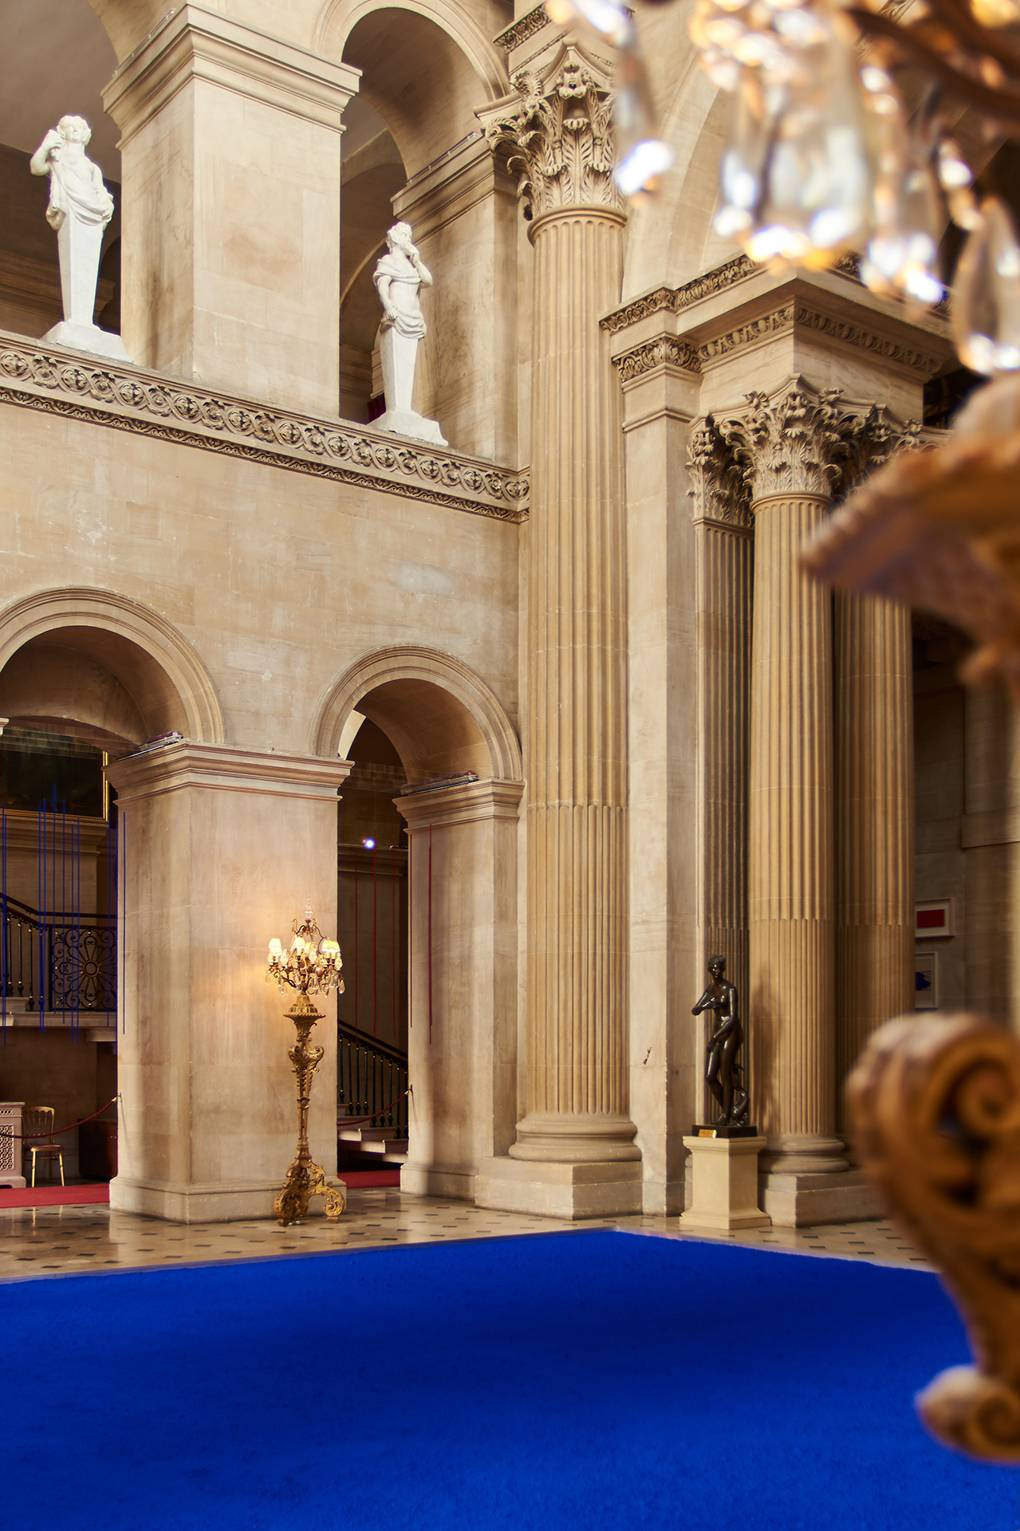 london fine art studios, london art classes, art workshops, art, art classes, london art, yves klein, blenheim palace, A carpet of blue in the Great Hall, Pure Pigment installation, 2018, LOUISE LONG